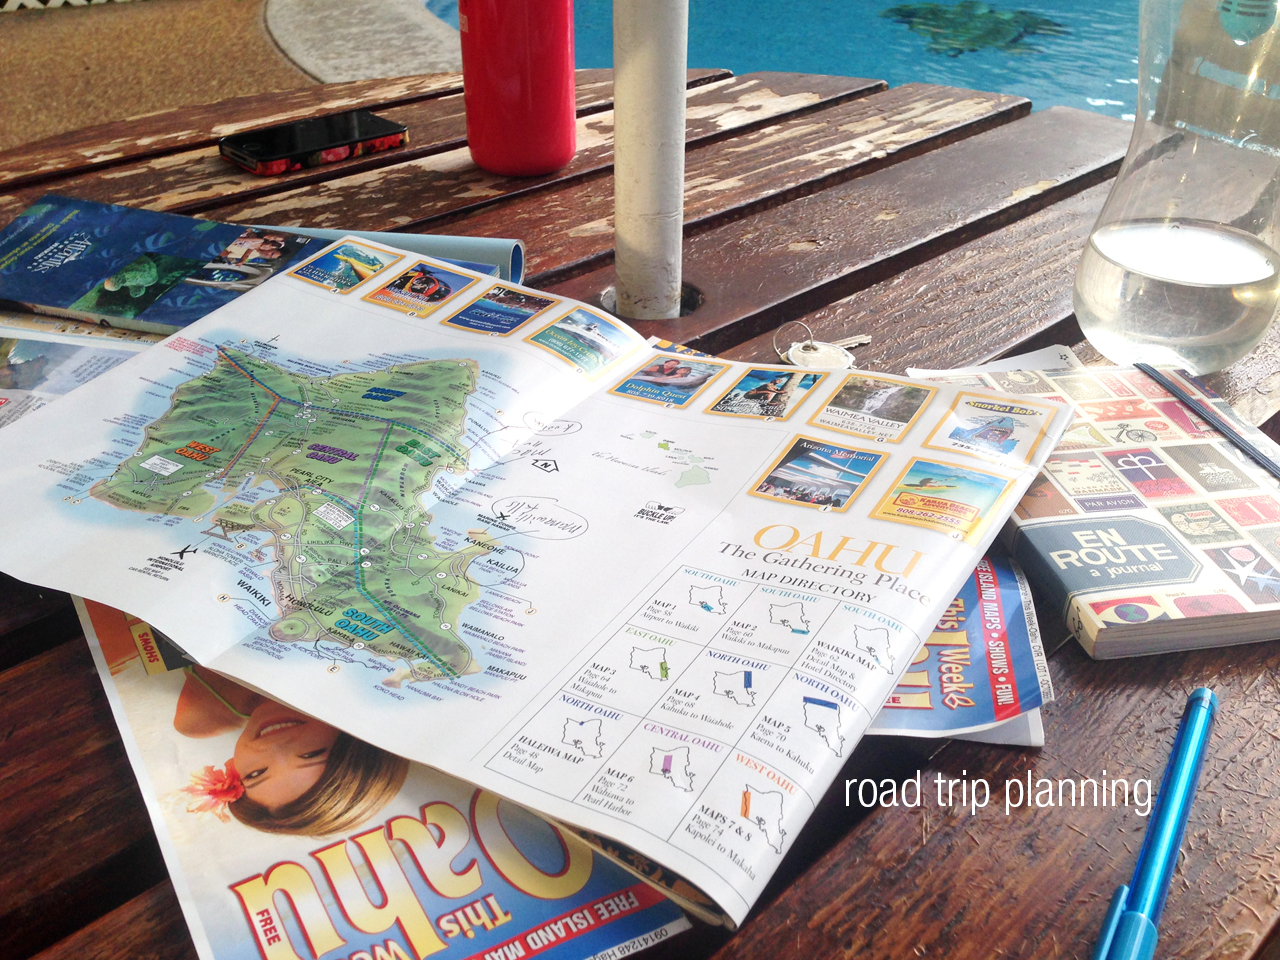 After our Pearl Harbour excursion, we had a road trip planning session for our road trip around the coast the next day!